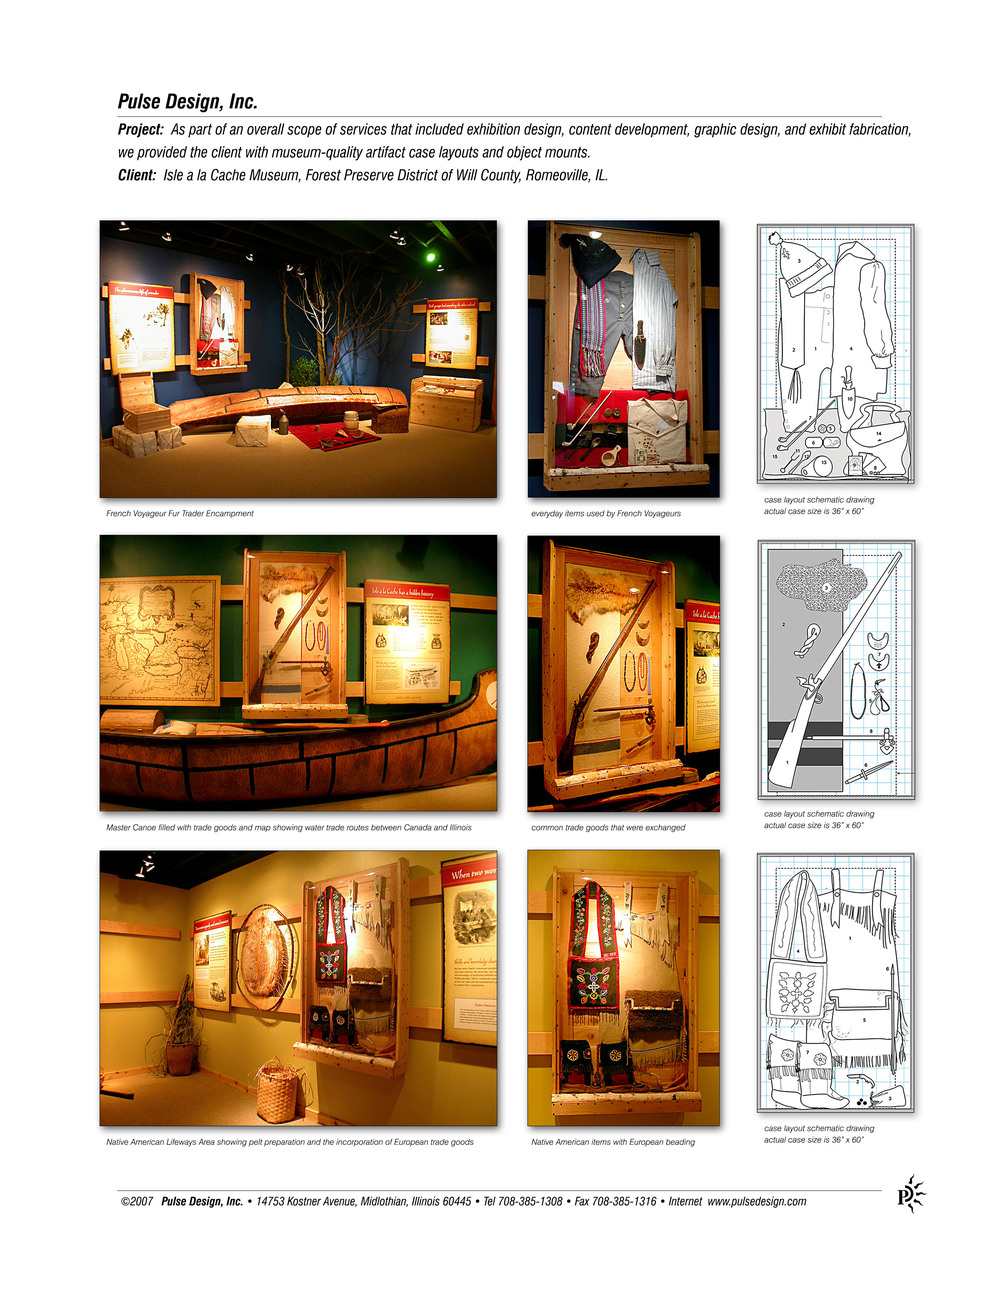 Isla-a-la-Cache-Exhibit-Case-Layouts-Pulse-Design-Inc.jpg